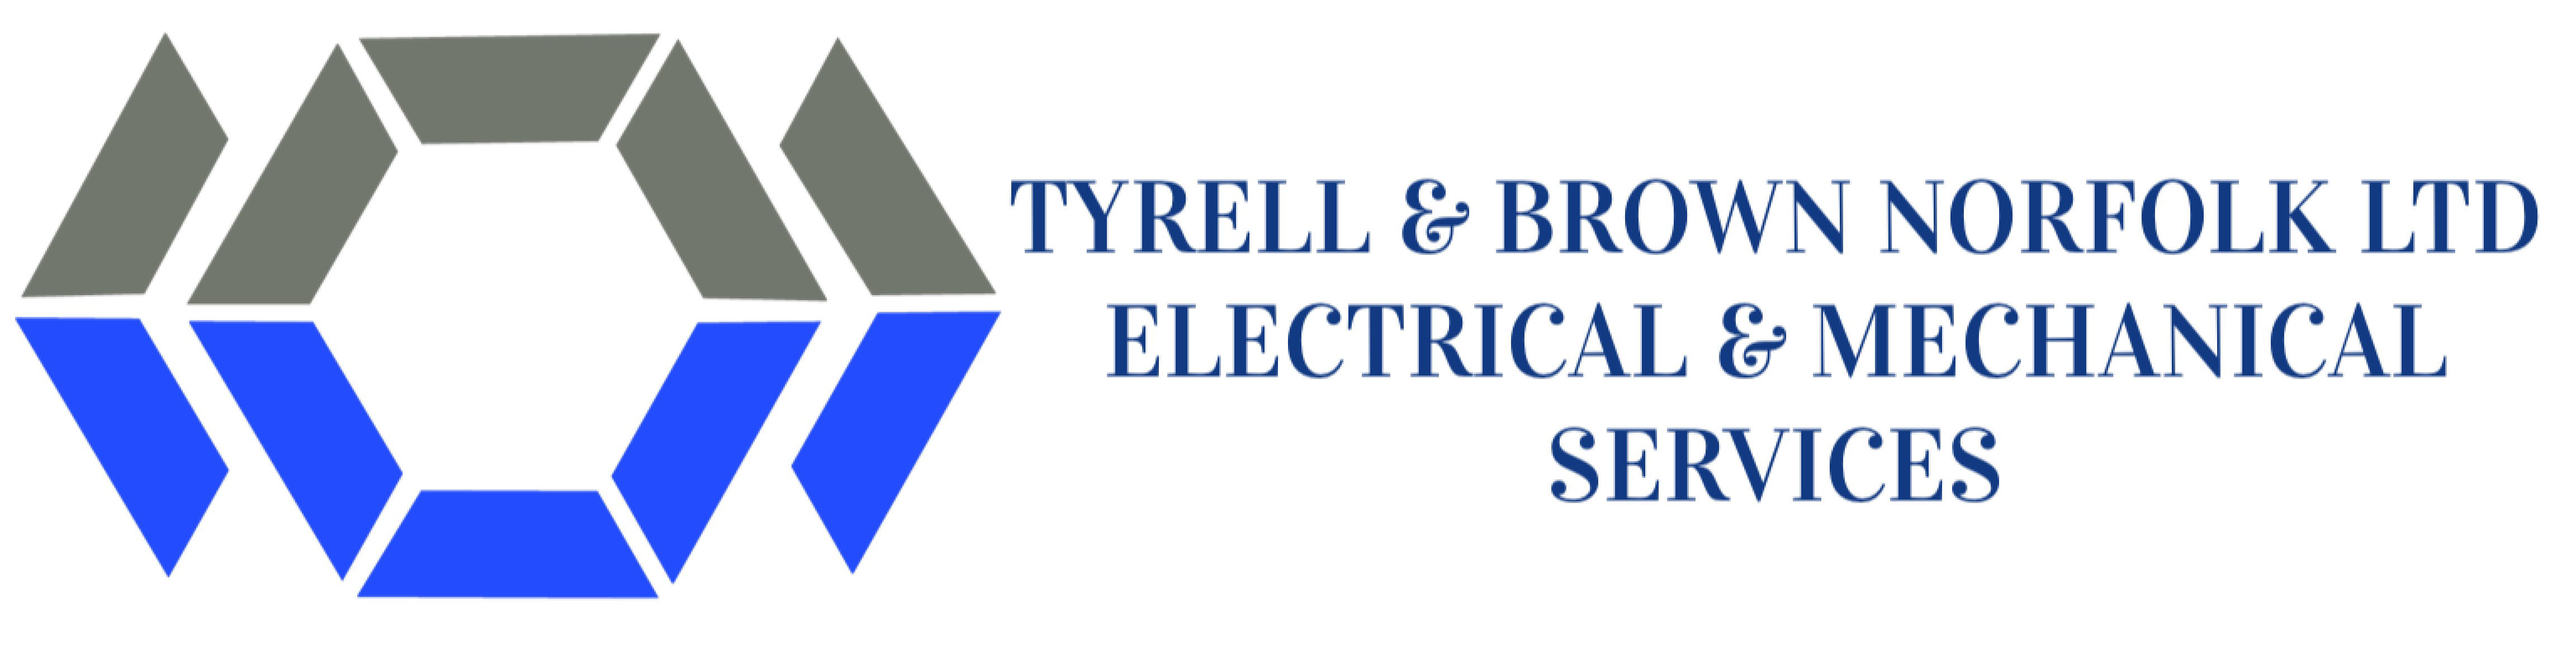 TYRELL & BROWN (NORFOLK) LTD